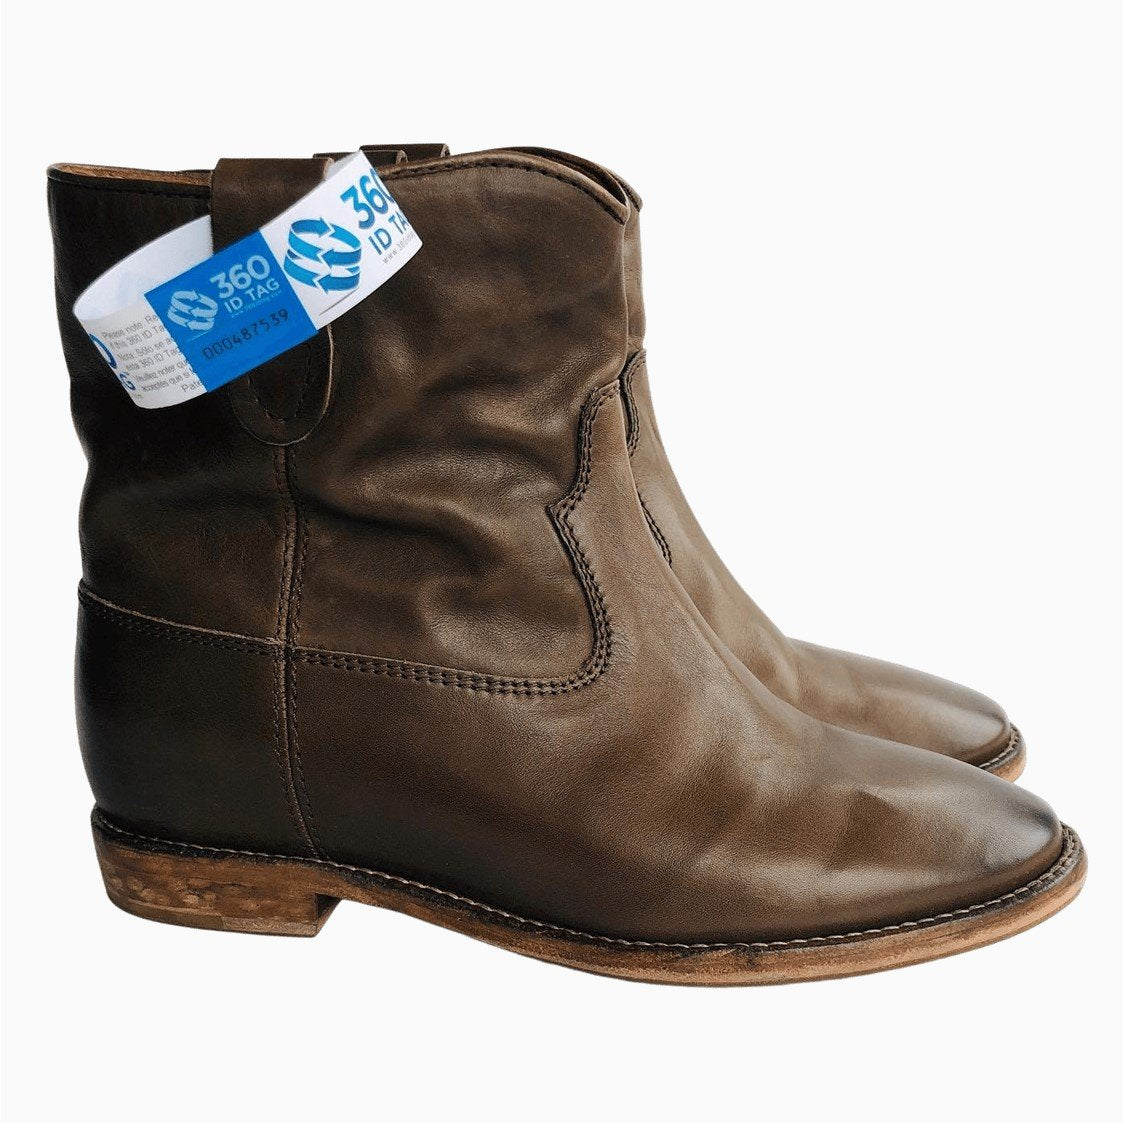 Boots with e-commerce return tag to prevent return fraud like wardrobing, wear and return, counterfeit product switches. 360 ID Tag